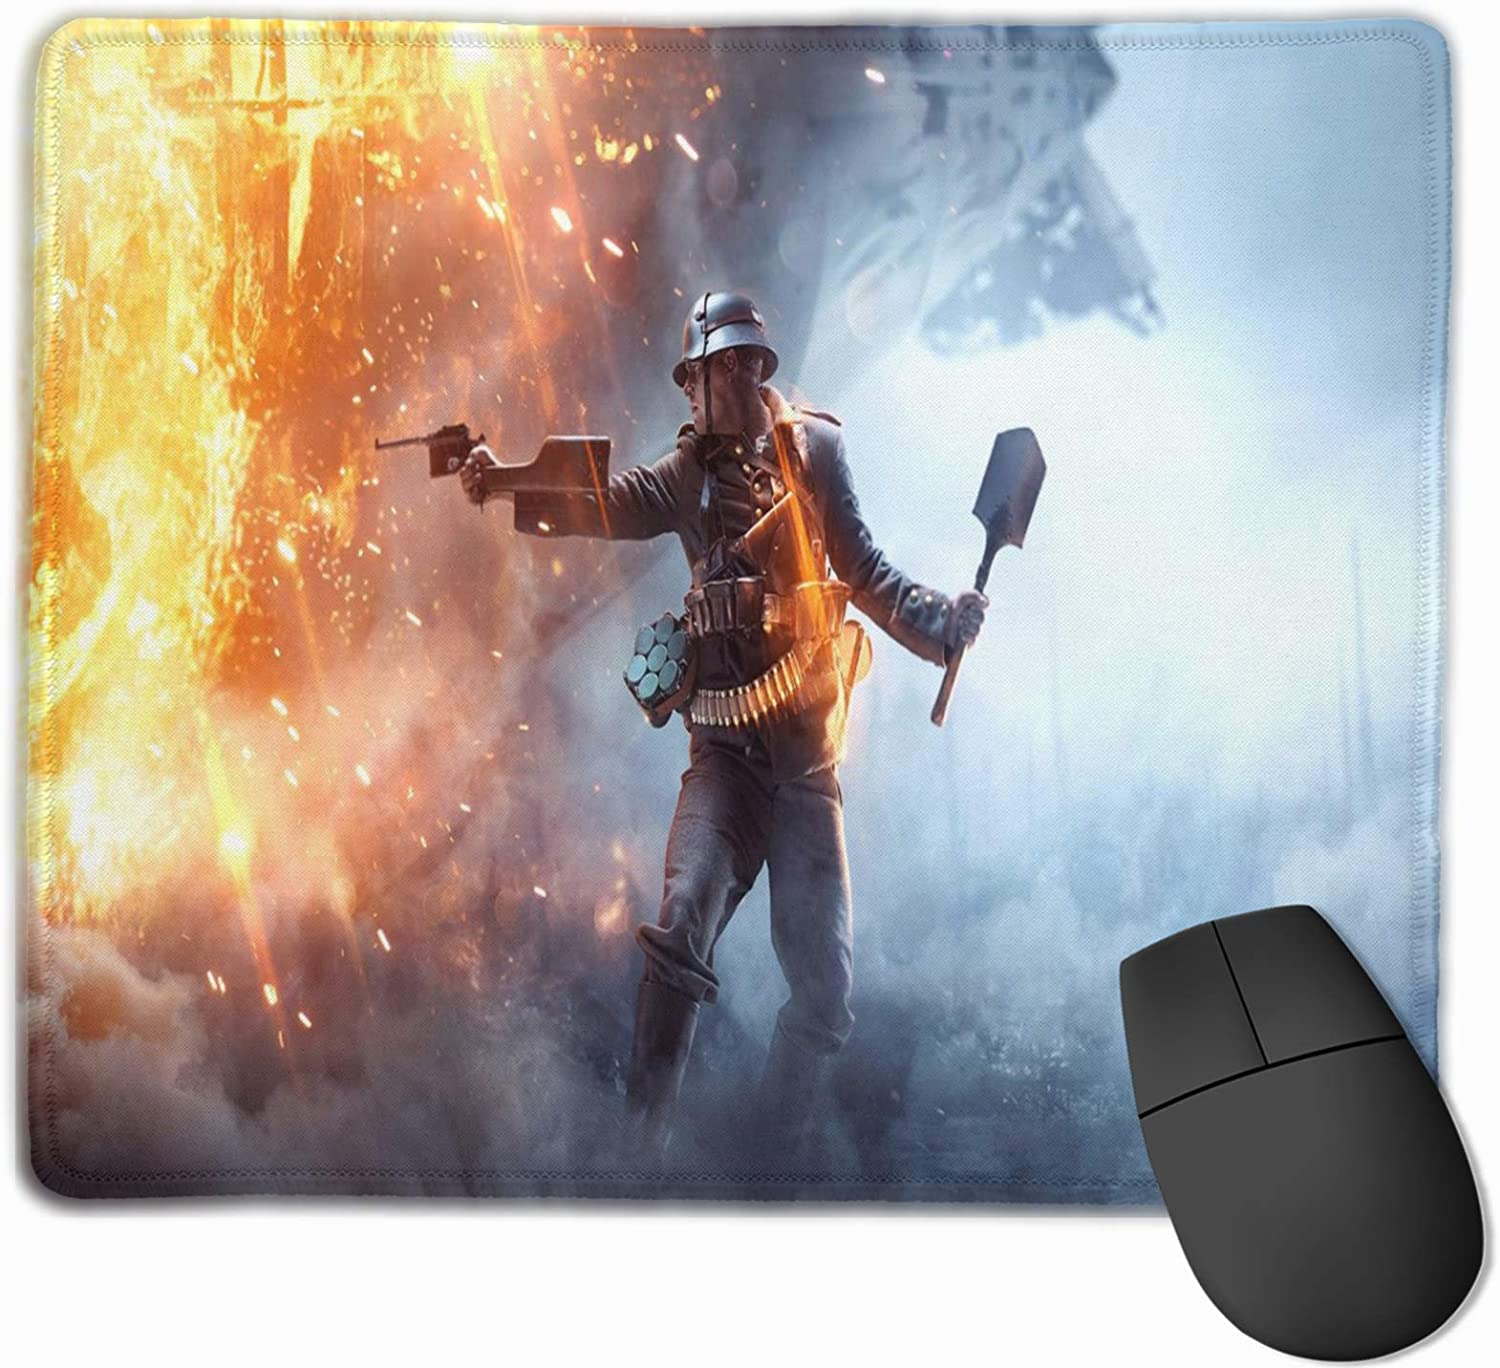 Pubg-25 Mouse Pad with Stitched Edge Non-Slip Rubber Base Mousepad for Computer, Laptop, Home, Office & Travel